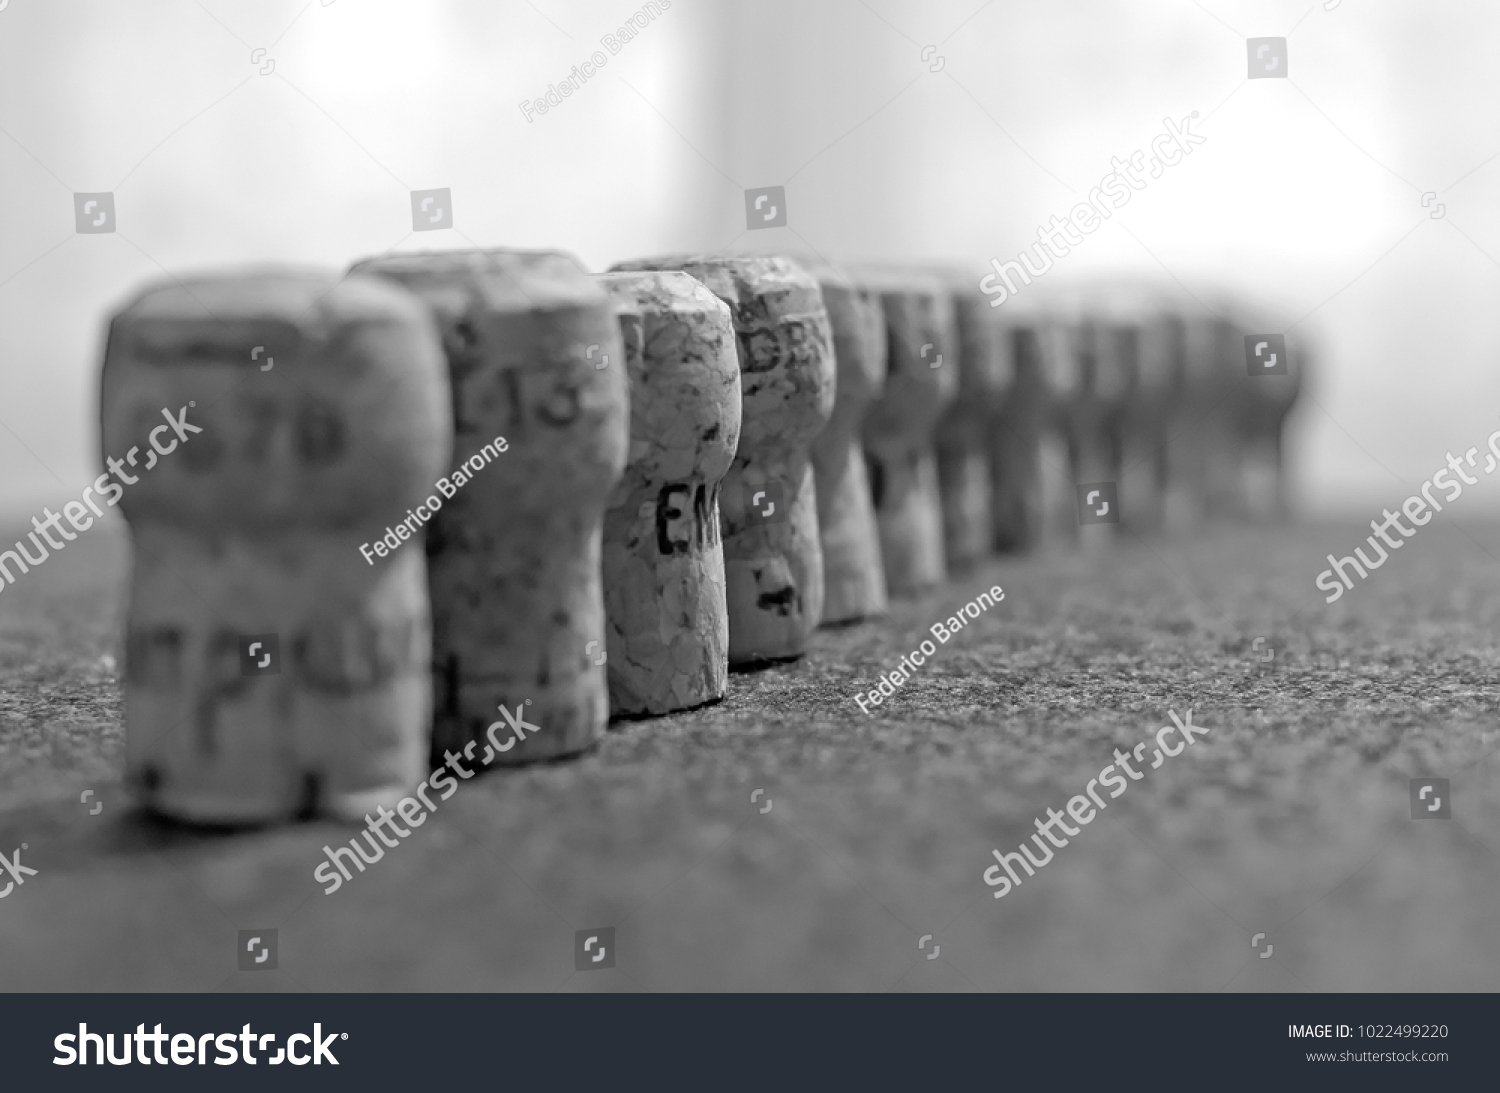 stock-photo-closeup-of-standing-champagn